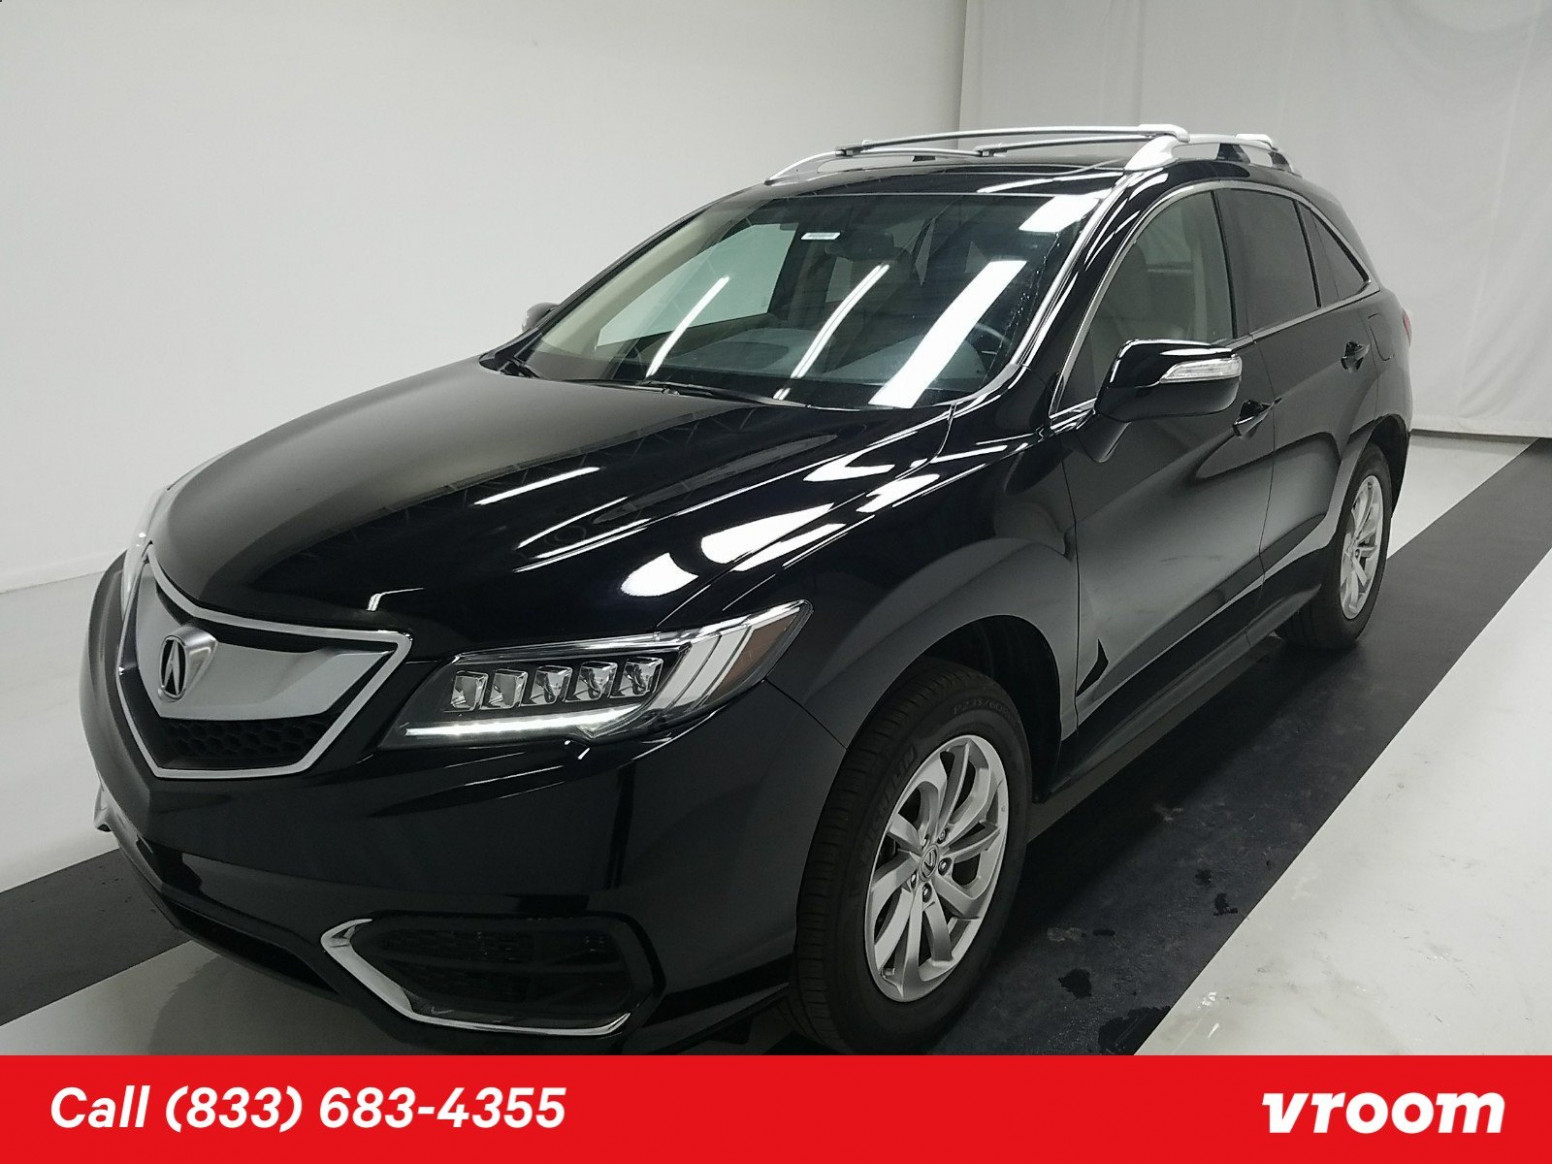 Acura RDX for Sale in Jackson, MS 12 - Autotrader